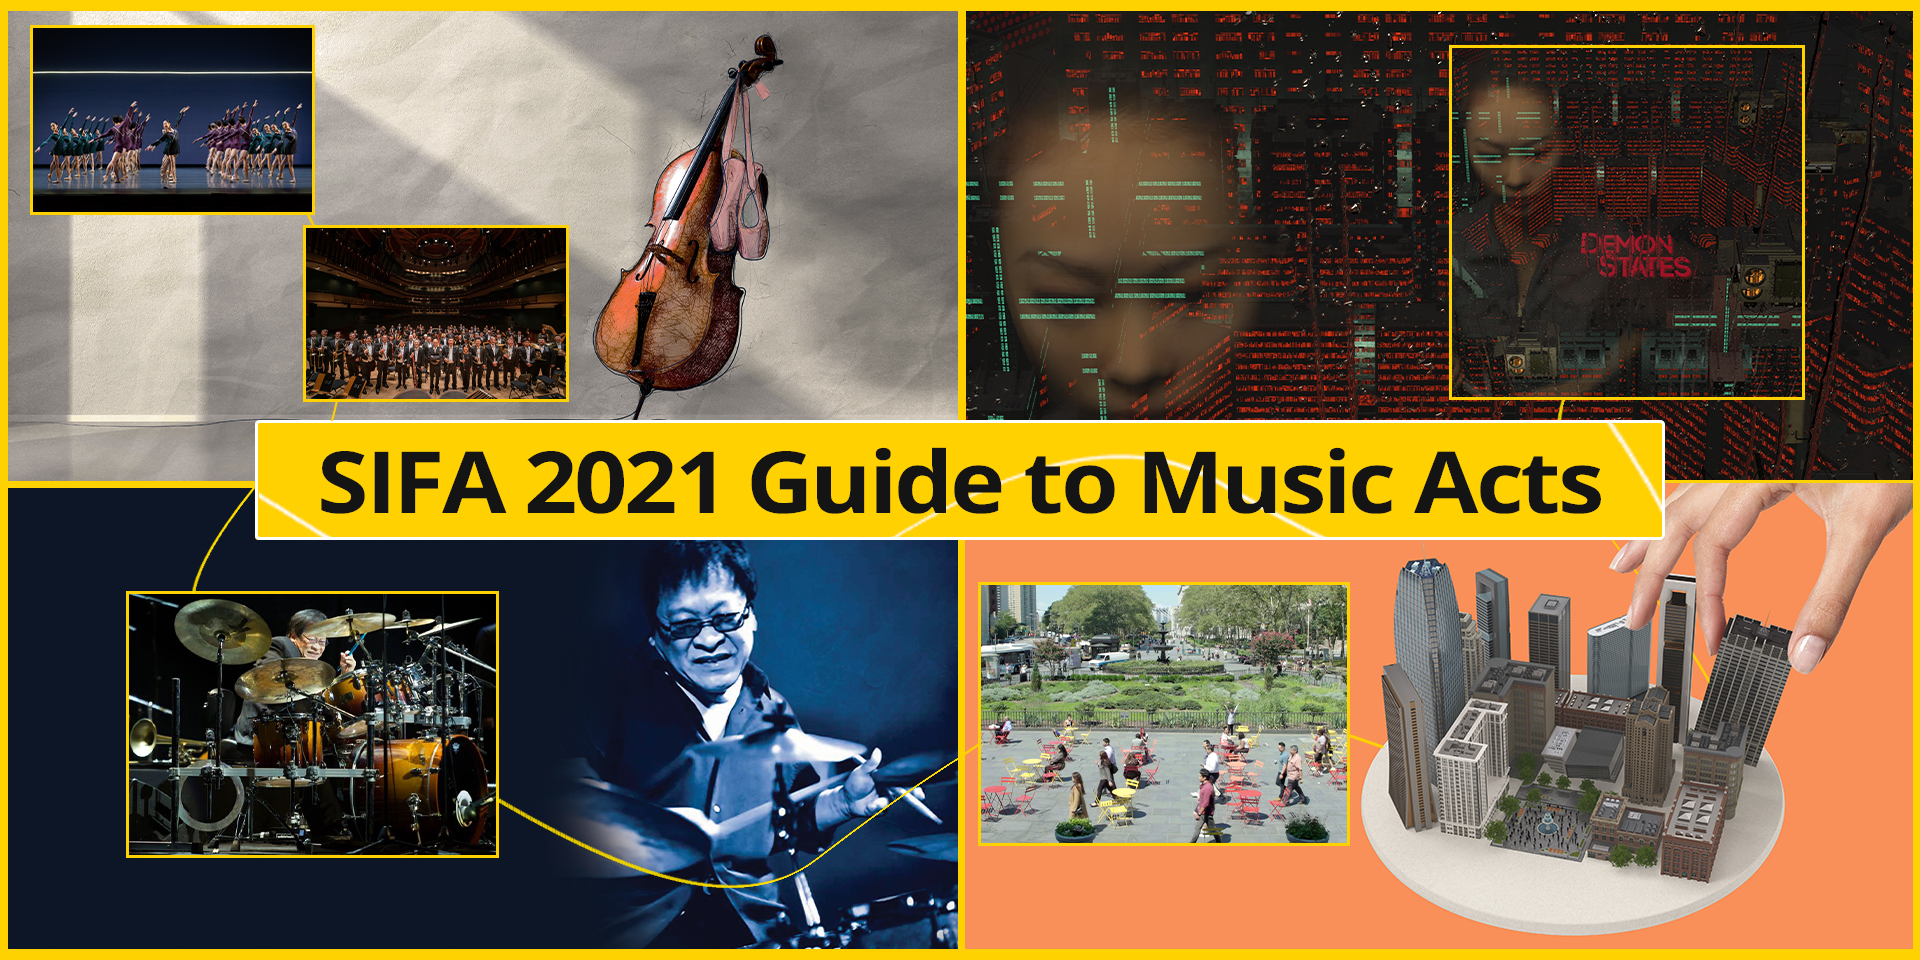 From virtual reality tours to jazz concerts, here's a musical guide to SIFA 2021